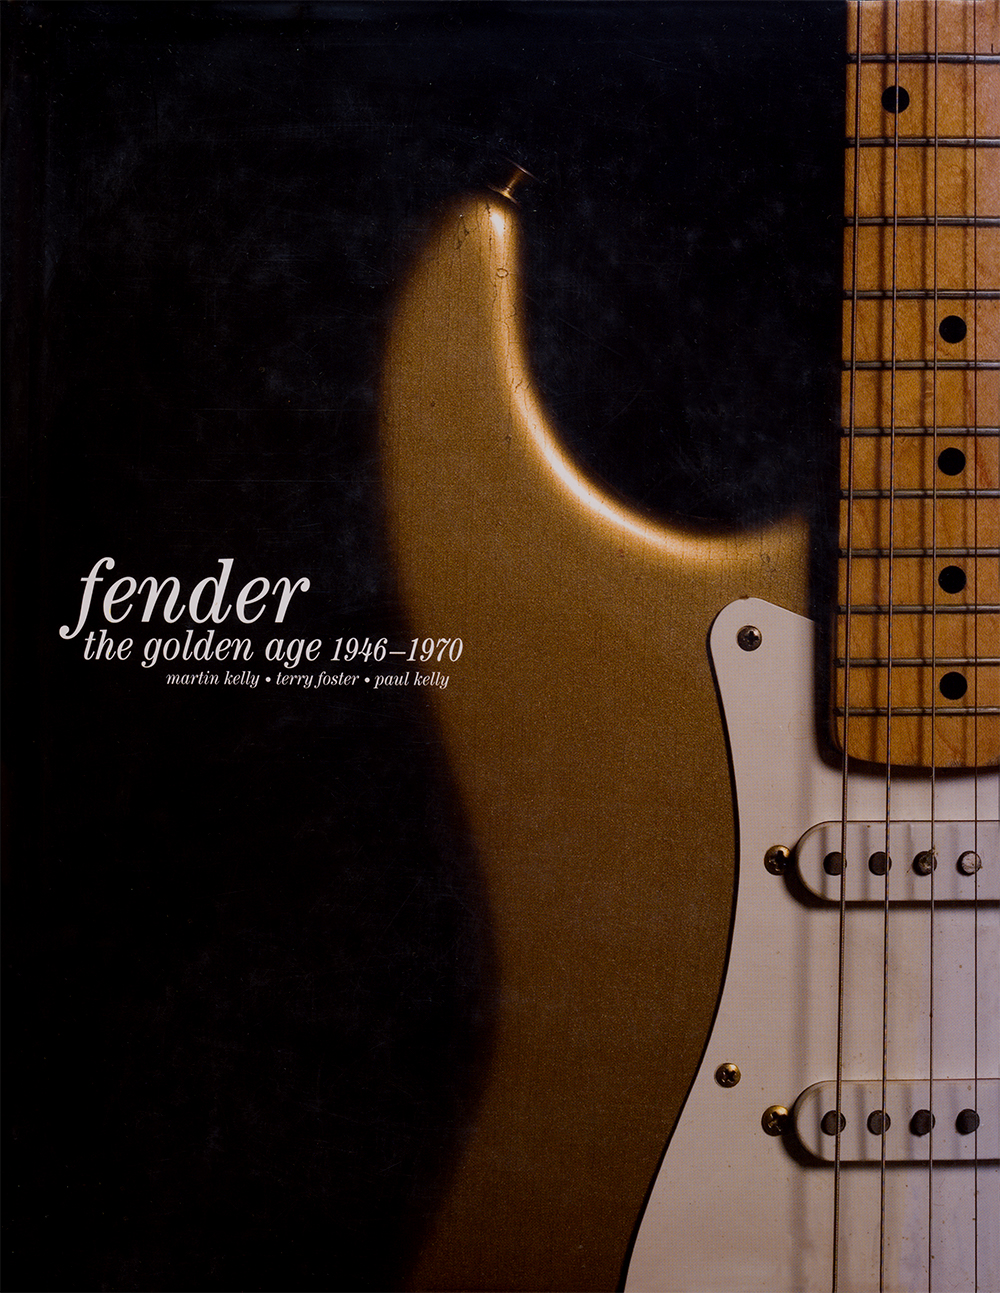 fender, the golden age, by martin kelly, terry foster, paul kelly